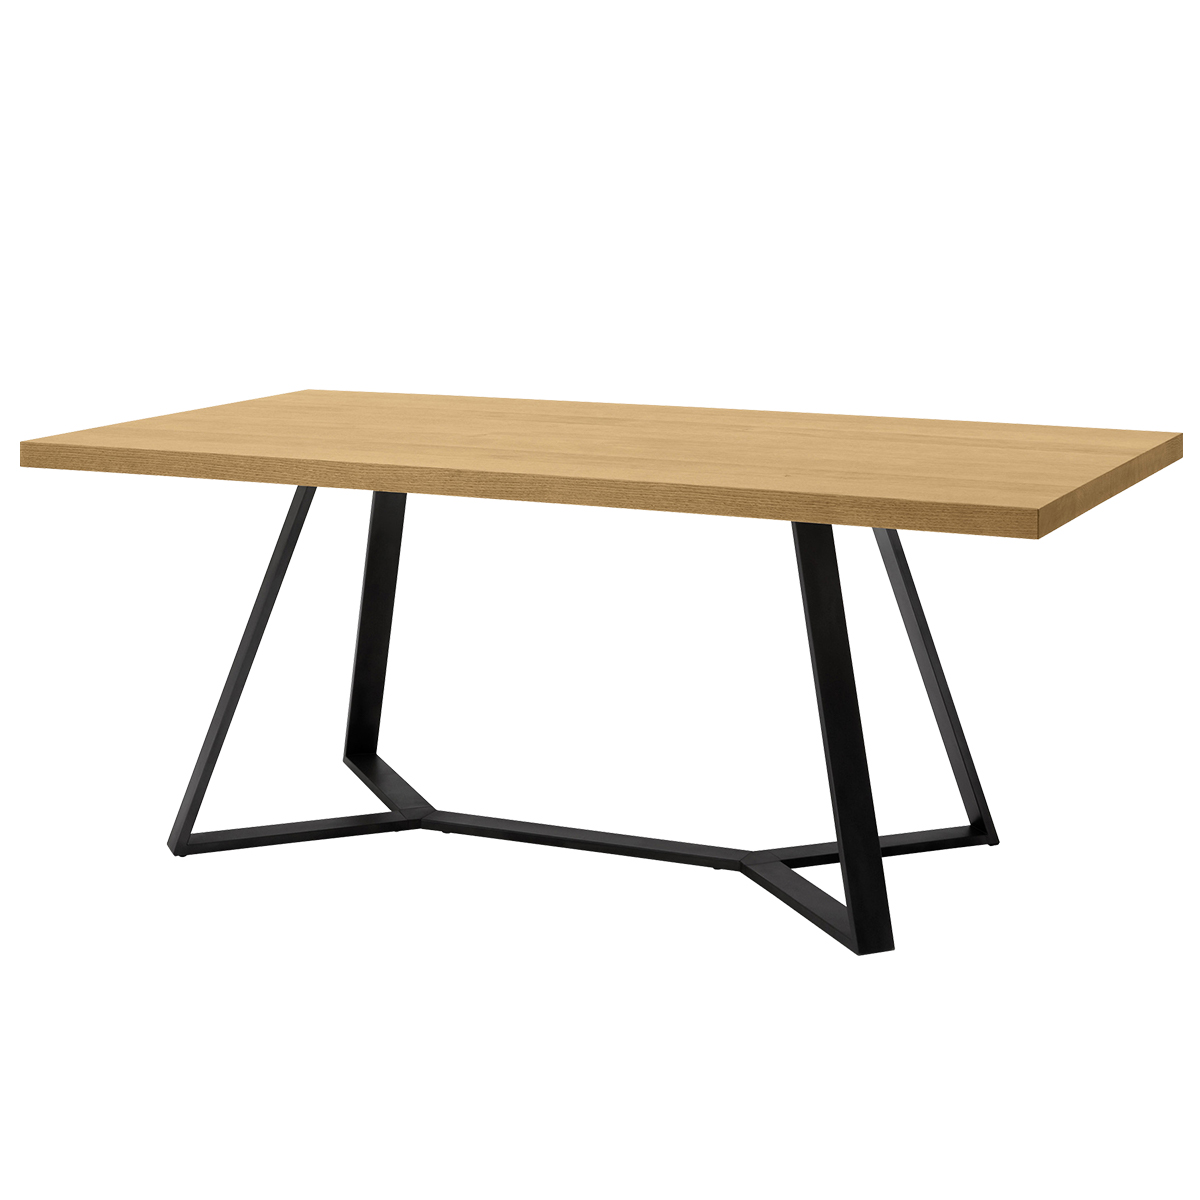 Archie Dining Table by Domitalia.